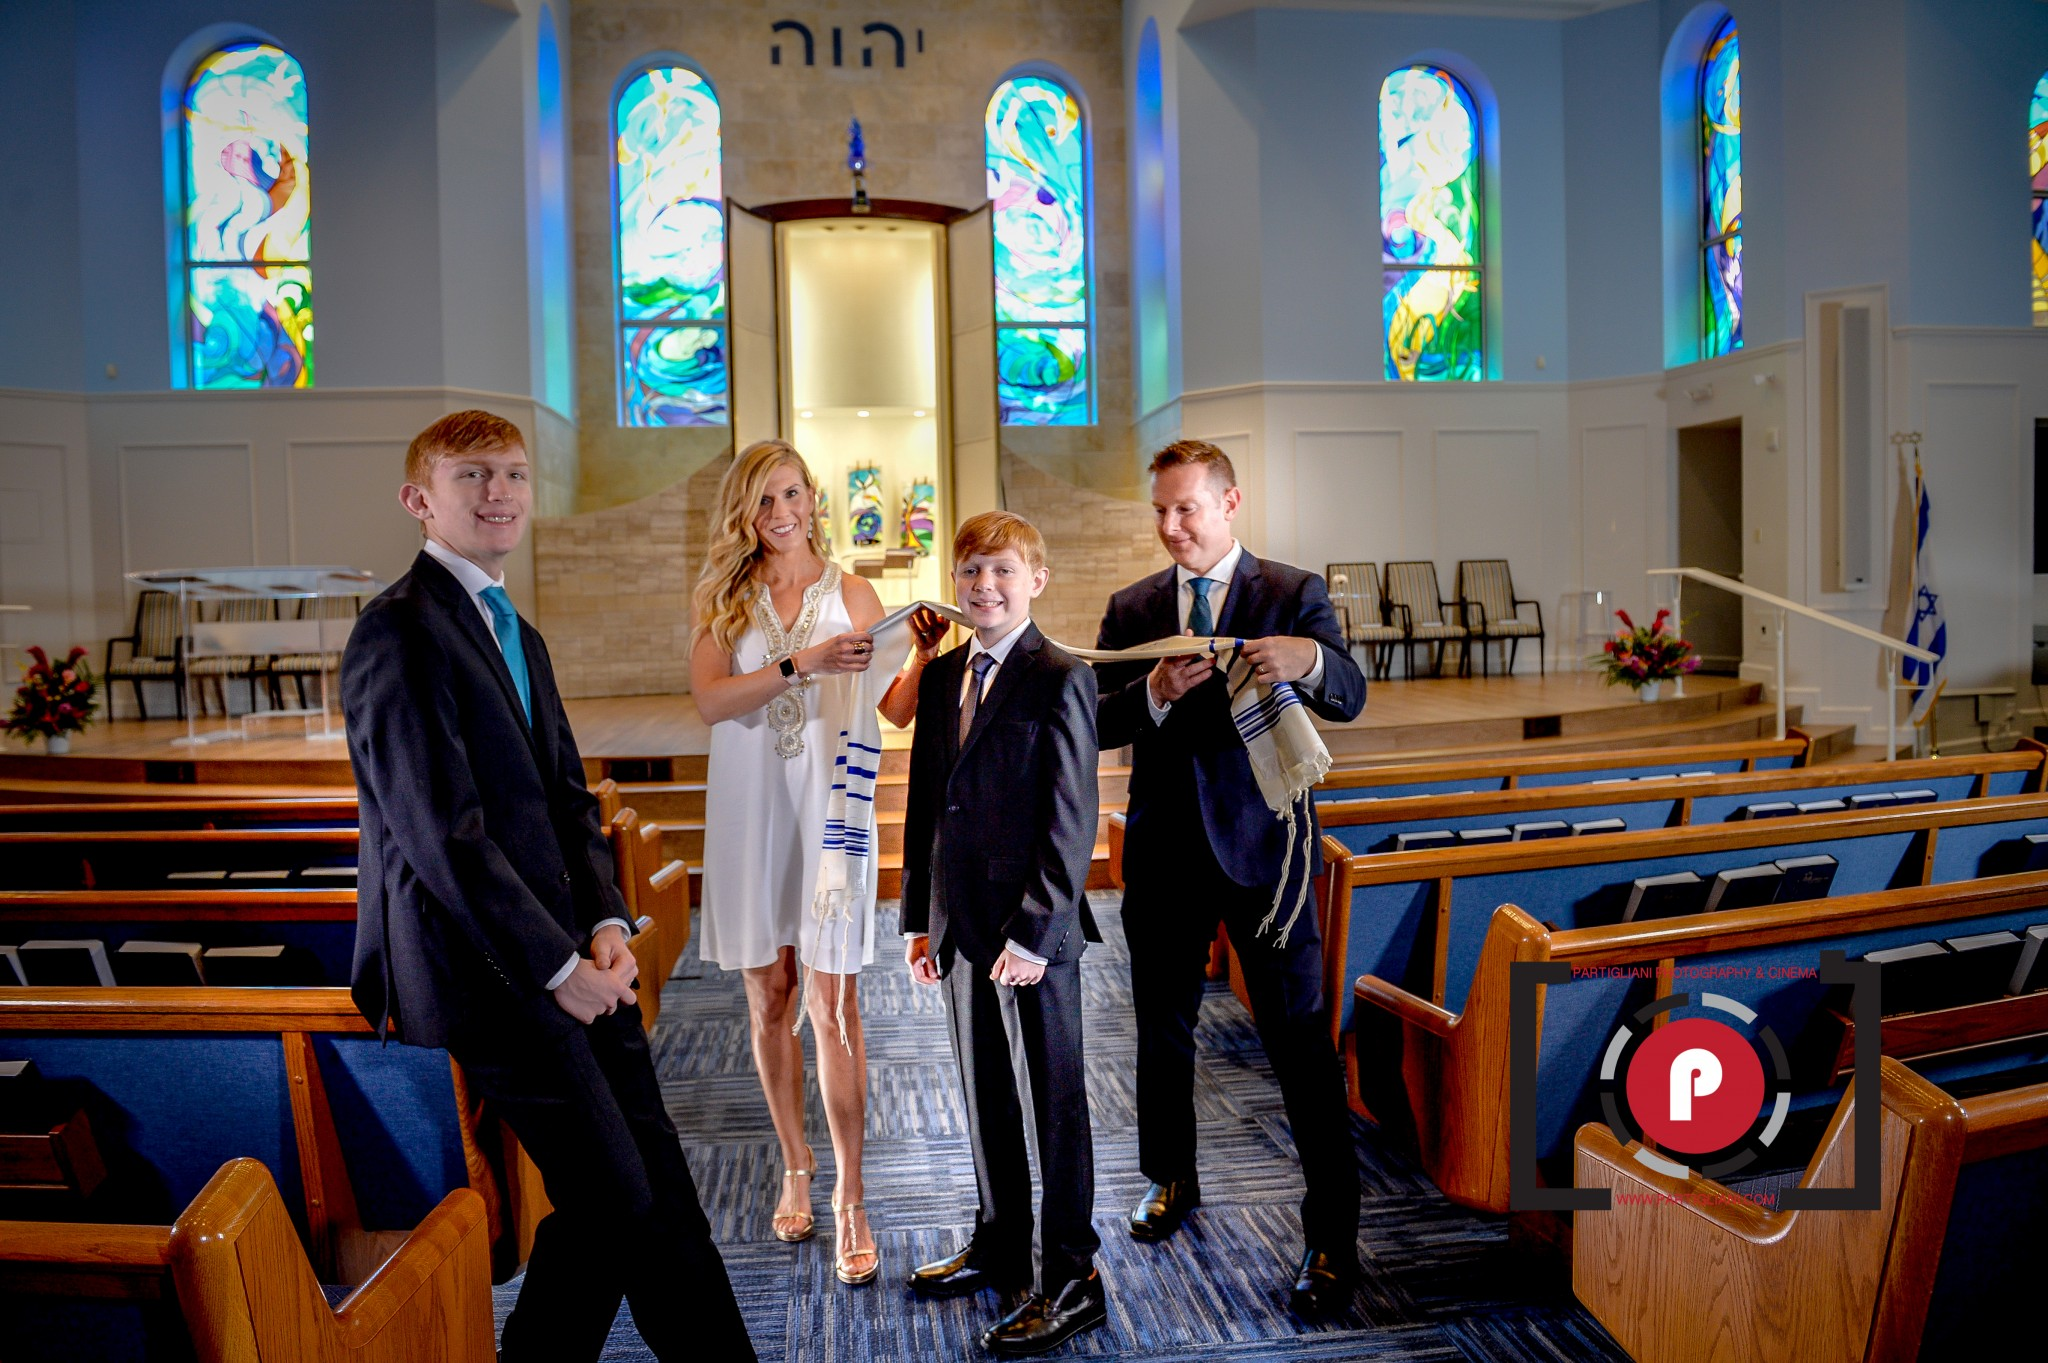 JORDAN FISCHER BAR MITZVAH. TEMPLE BETH AM – JUPITER, PGA NATIONAL RESORT, CAROLYN'S CREATYONZ, MIKEY  Z ENTERTAINMENT GROUP / DJ COSMOS,  FESTER CUSTOM AIRBRUSHING, MICHELLE AIRSBRUSHING TATTO,  BAHAMA BUCK'S